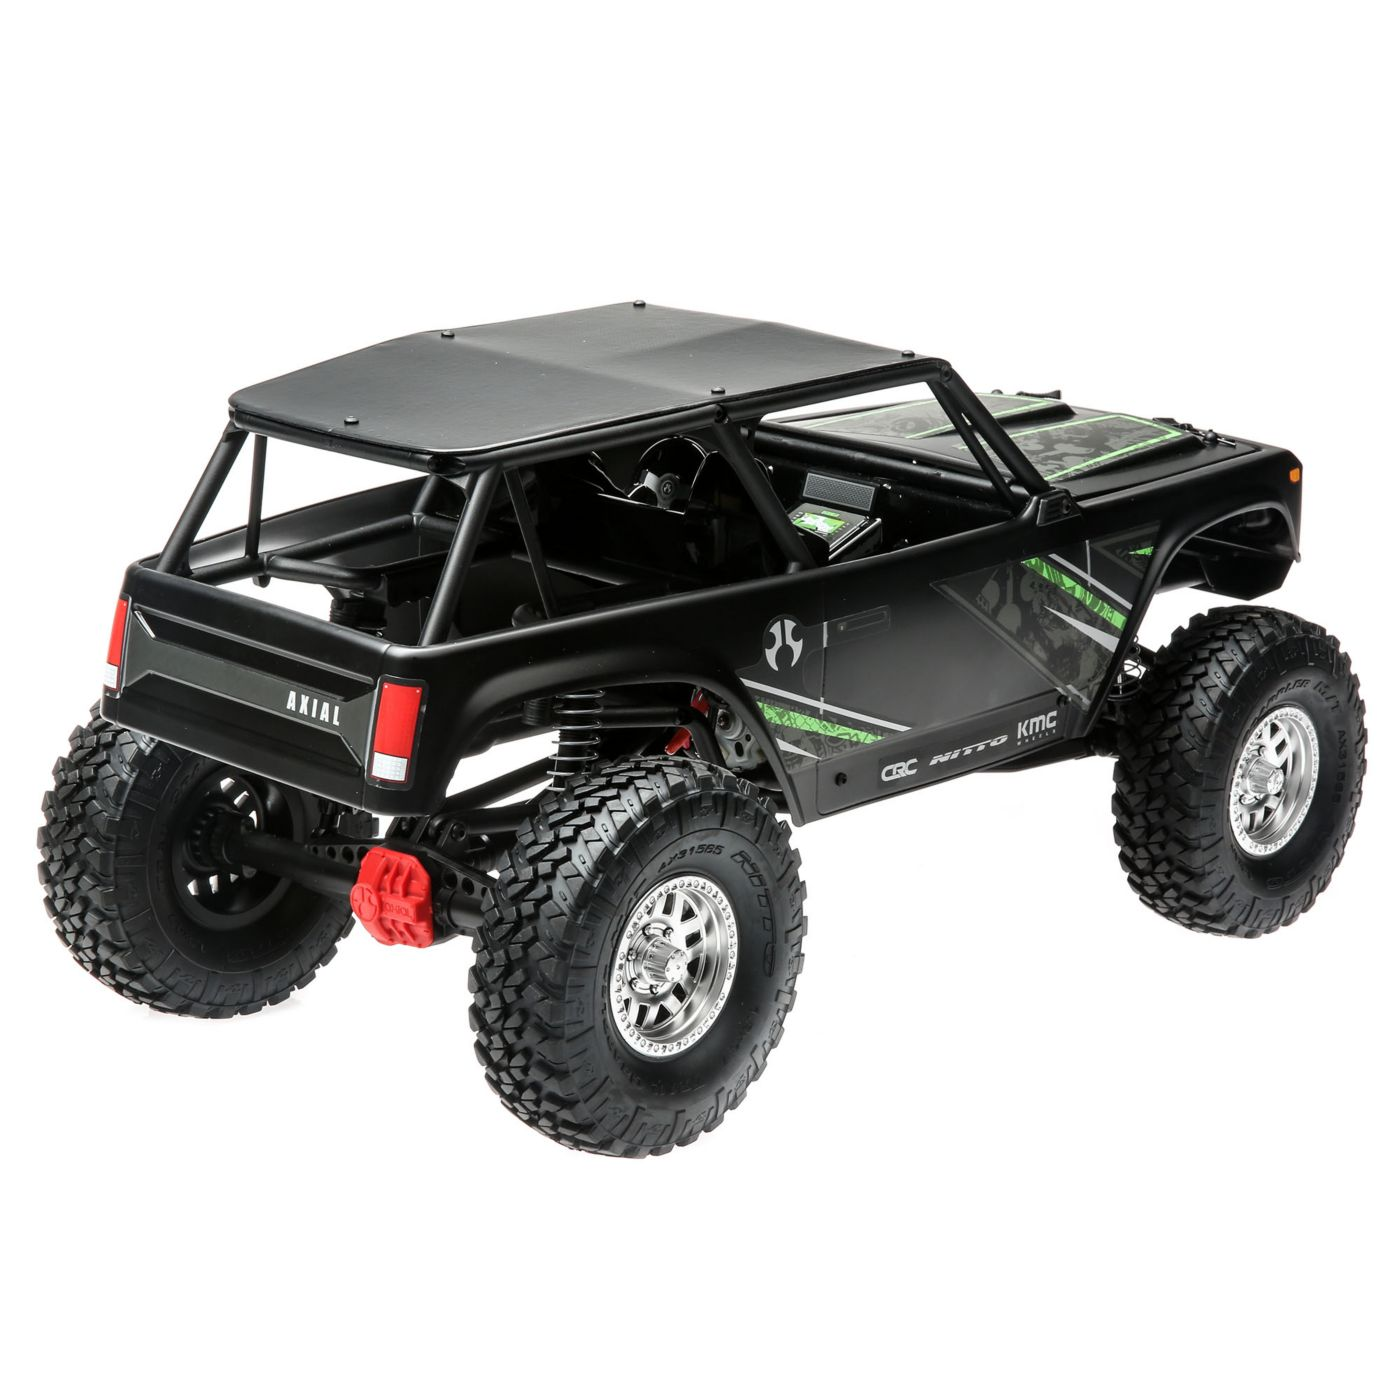 Axial Wraith 1/10 RTR Scale 1 9 Electric Rock Crawler (Black)